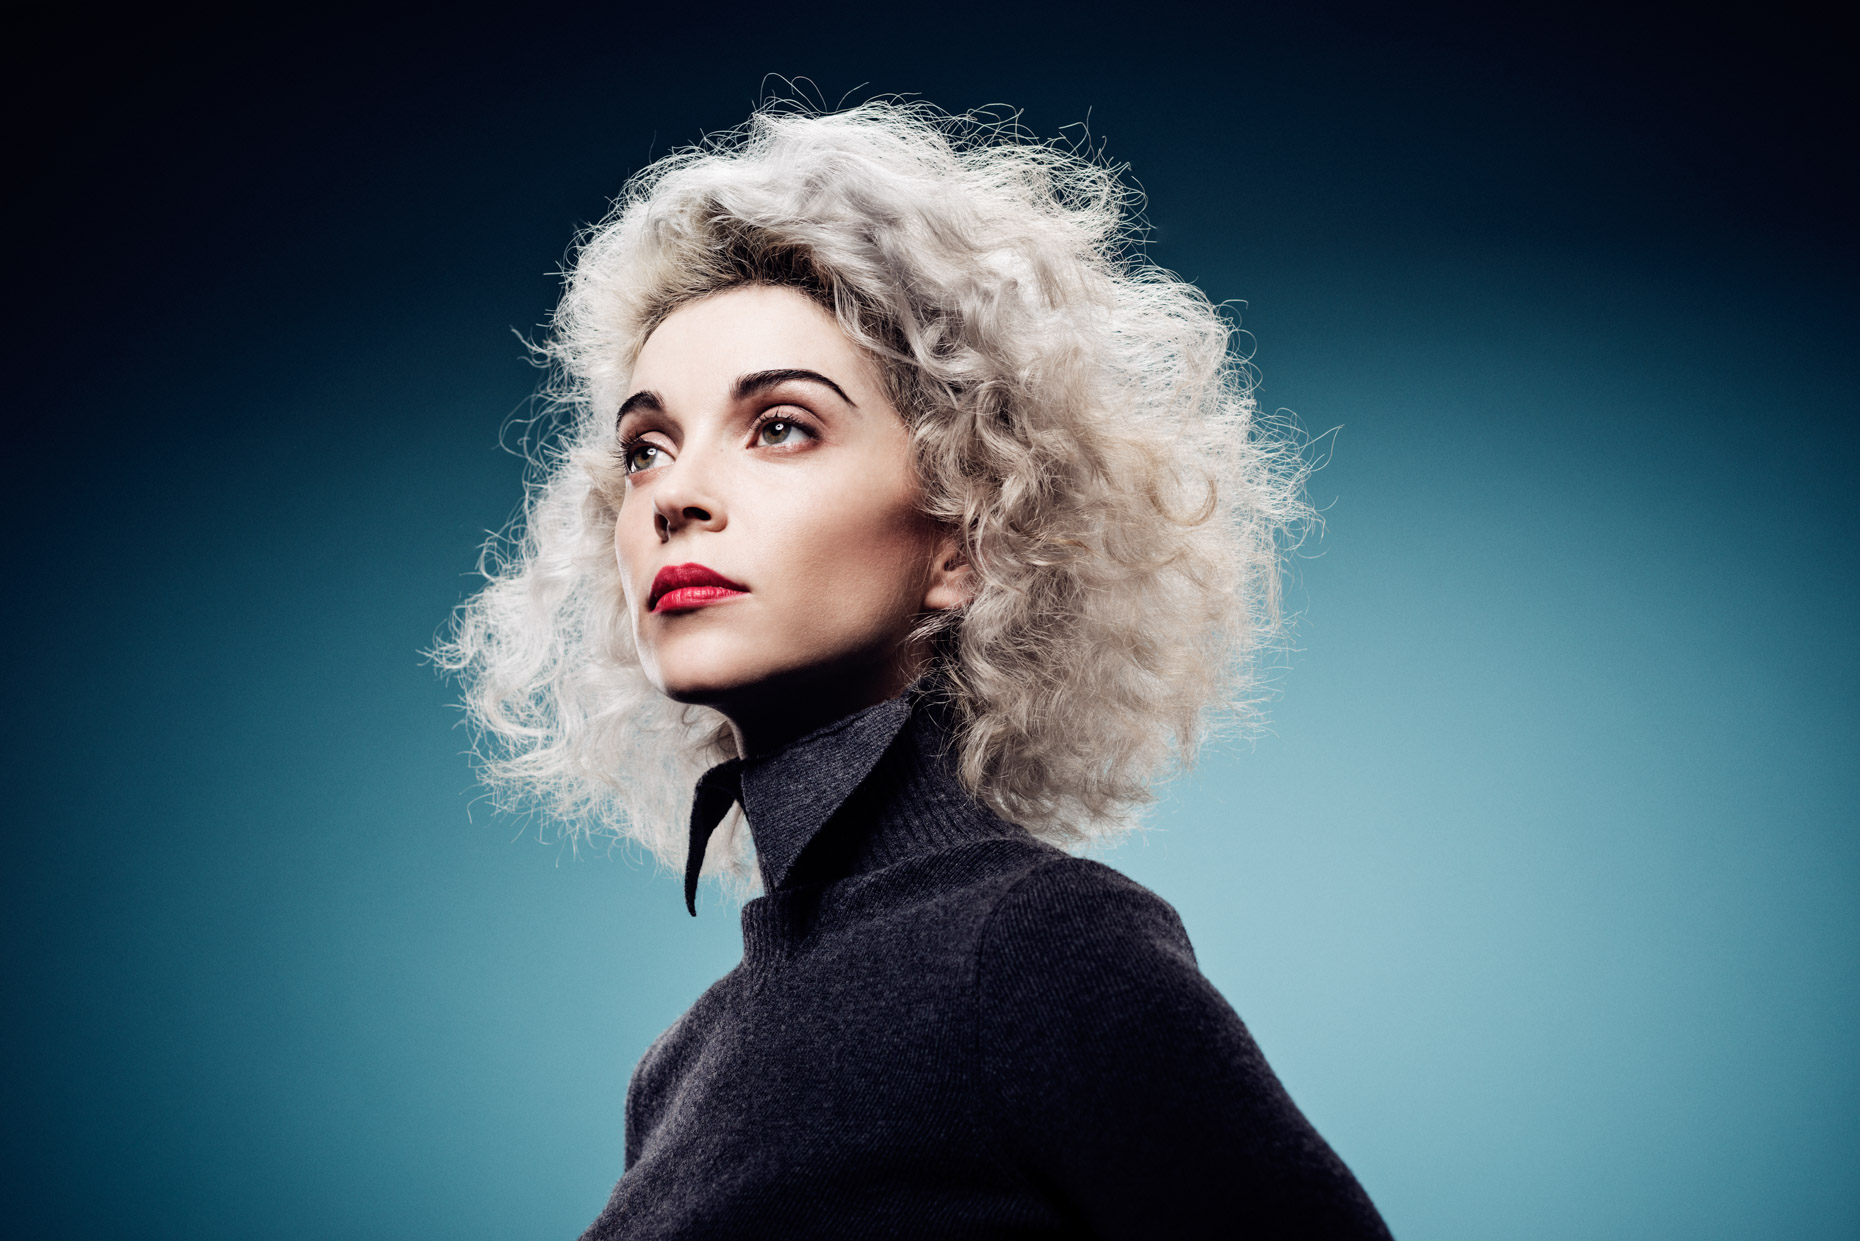 StVincent-NME22075